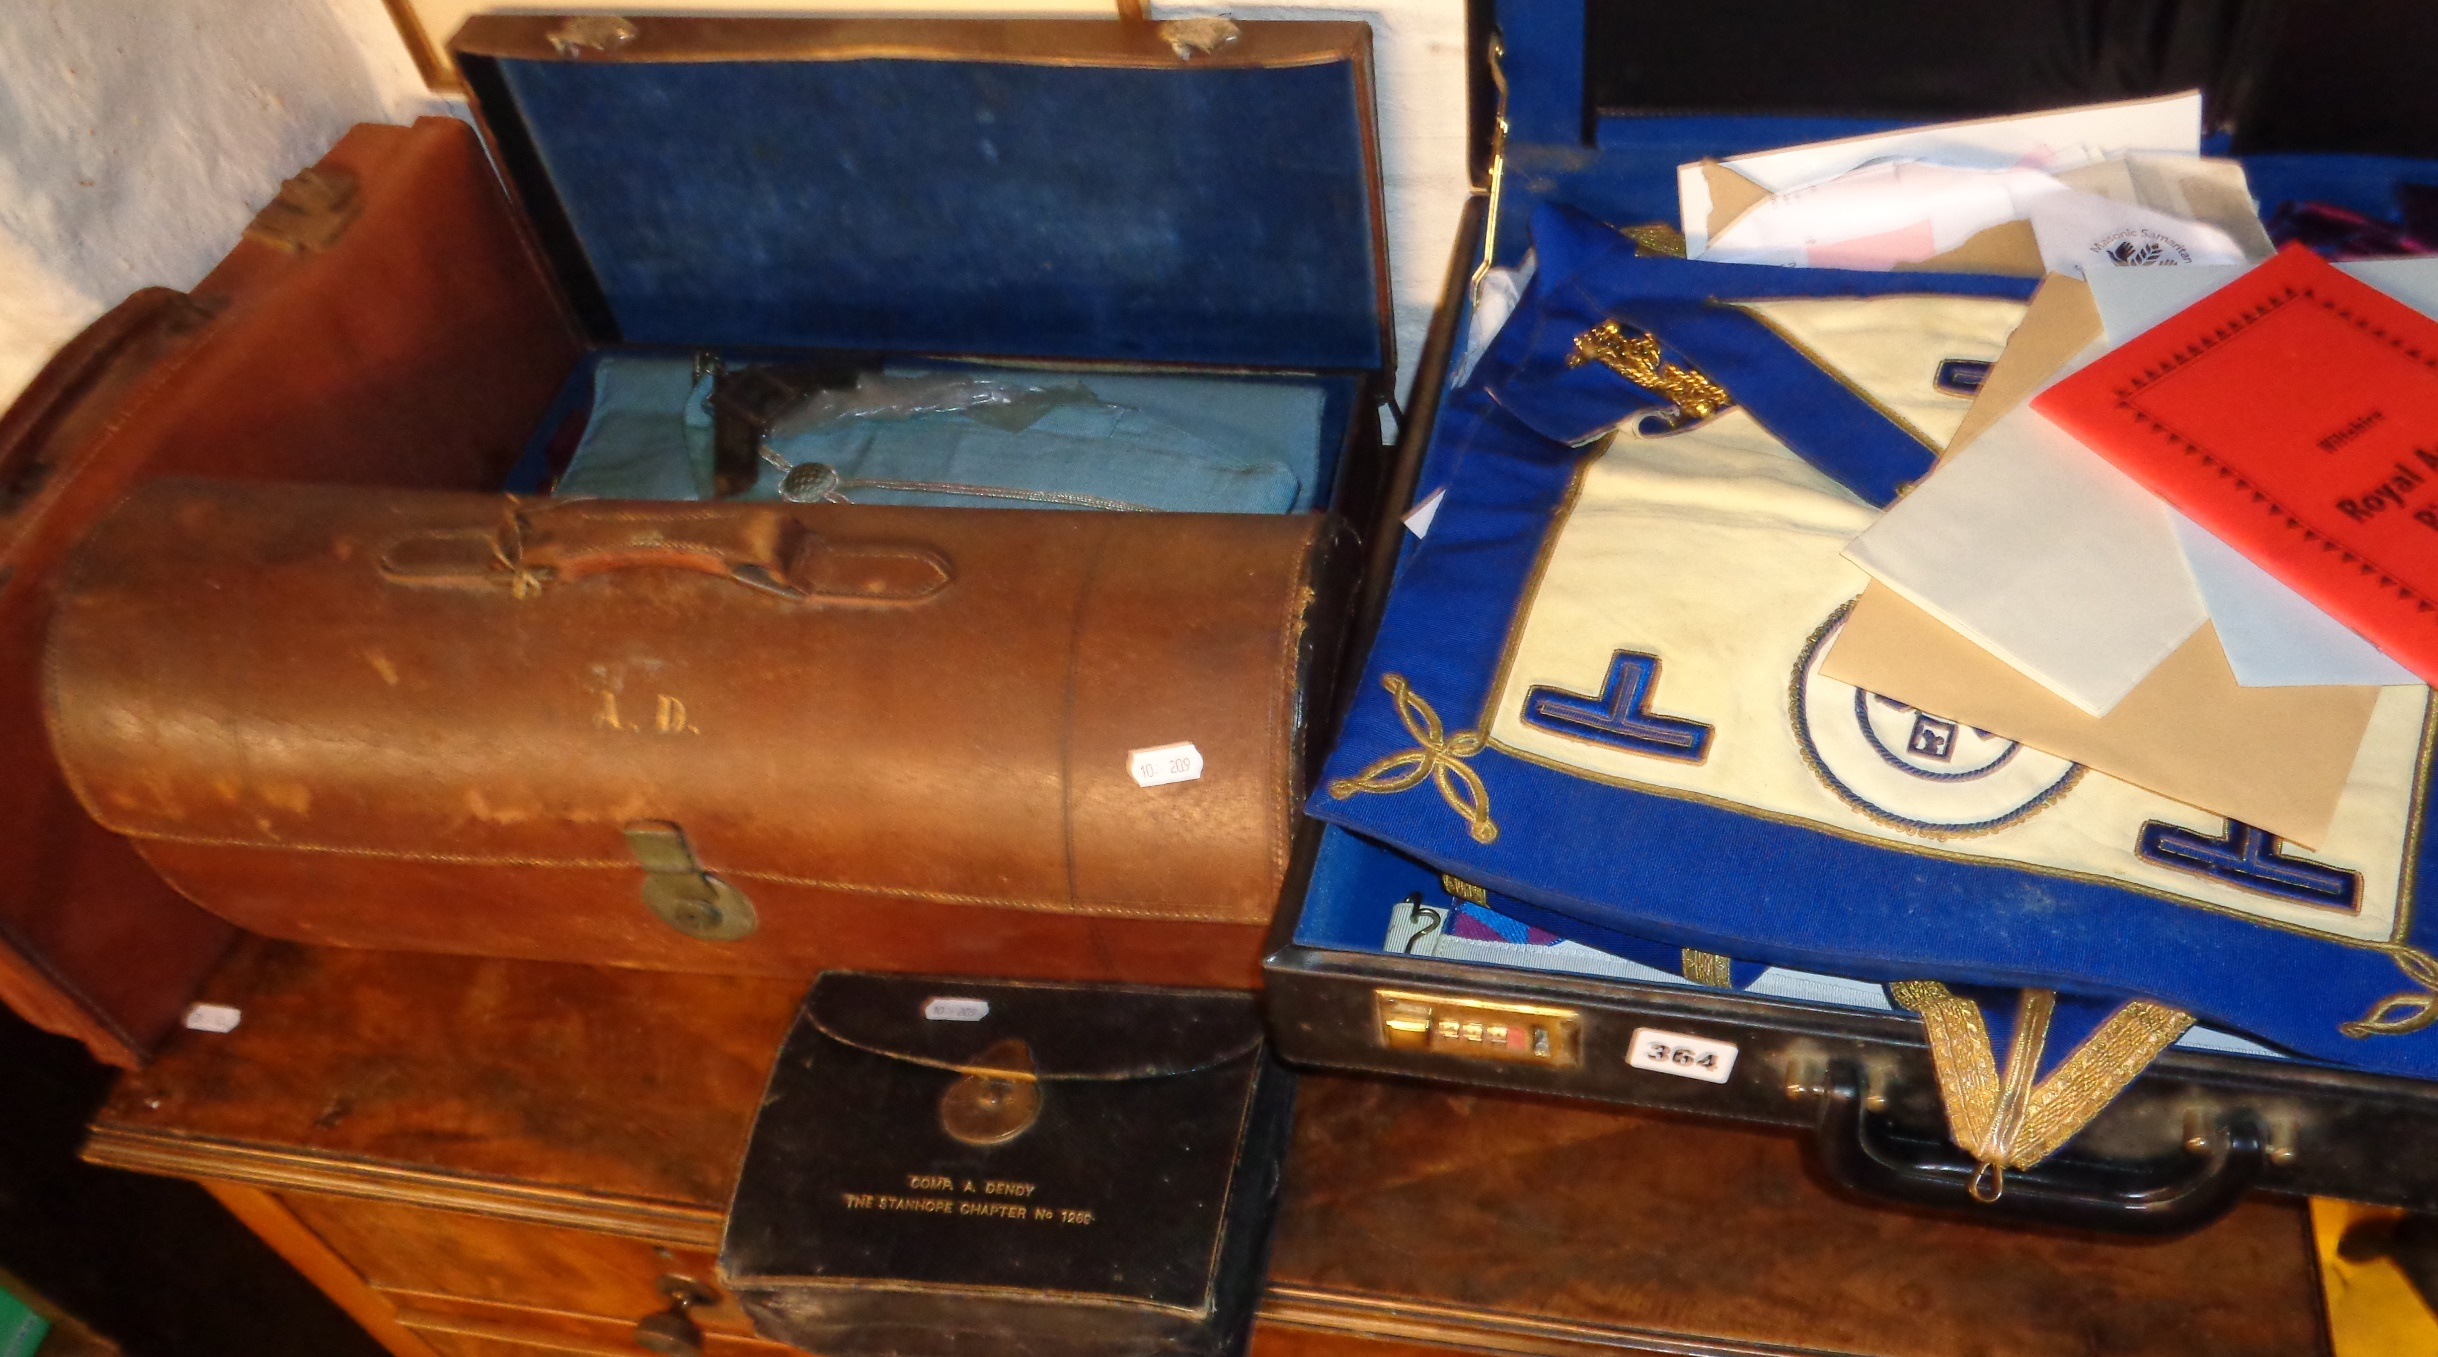 Lot 364 - Case containing Masonic aprons, accessories, documents etc